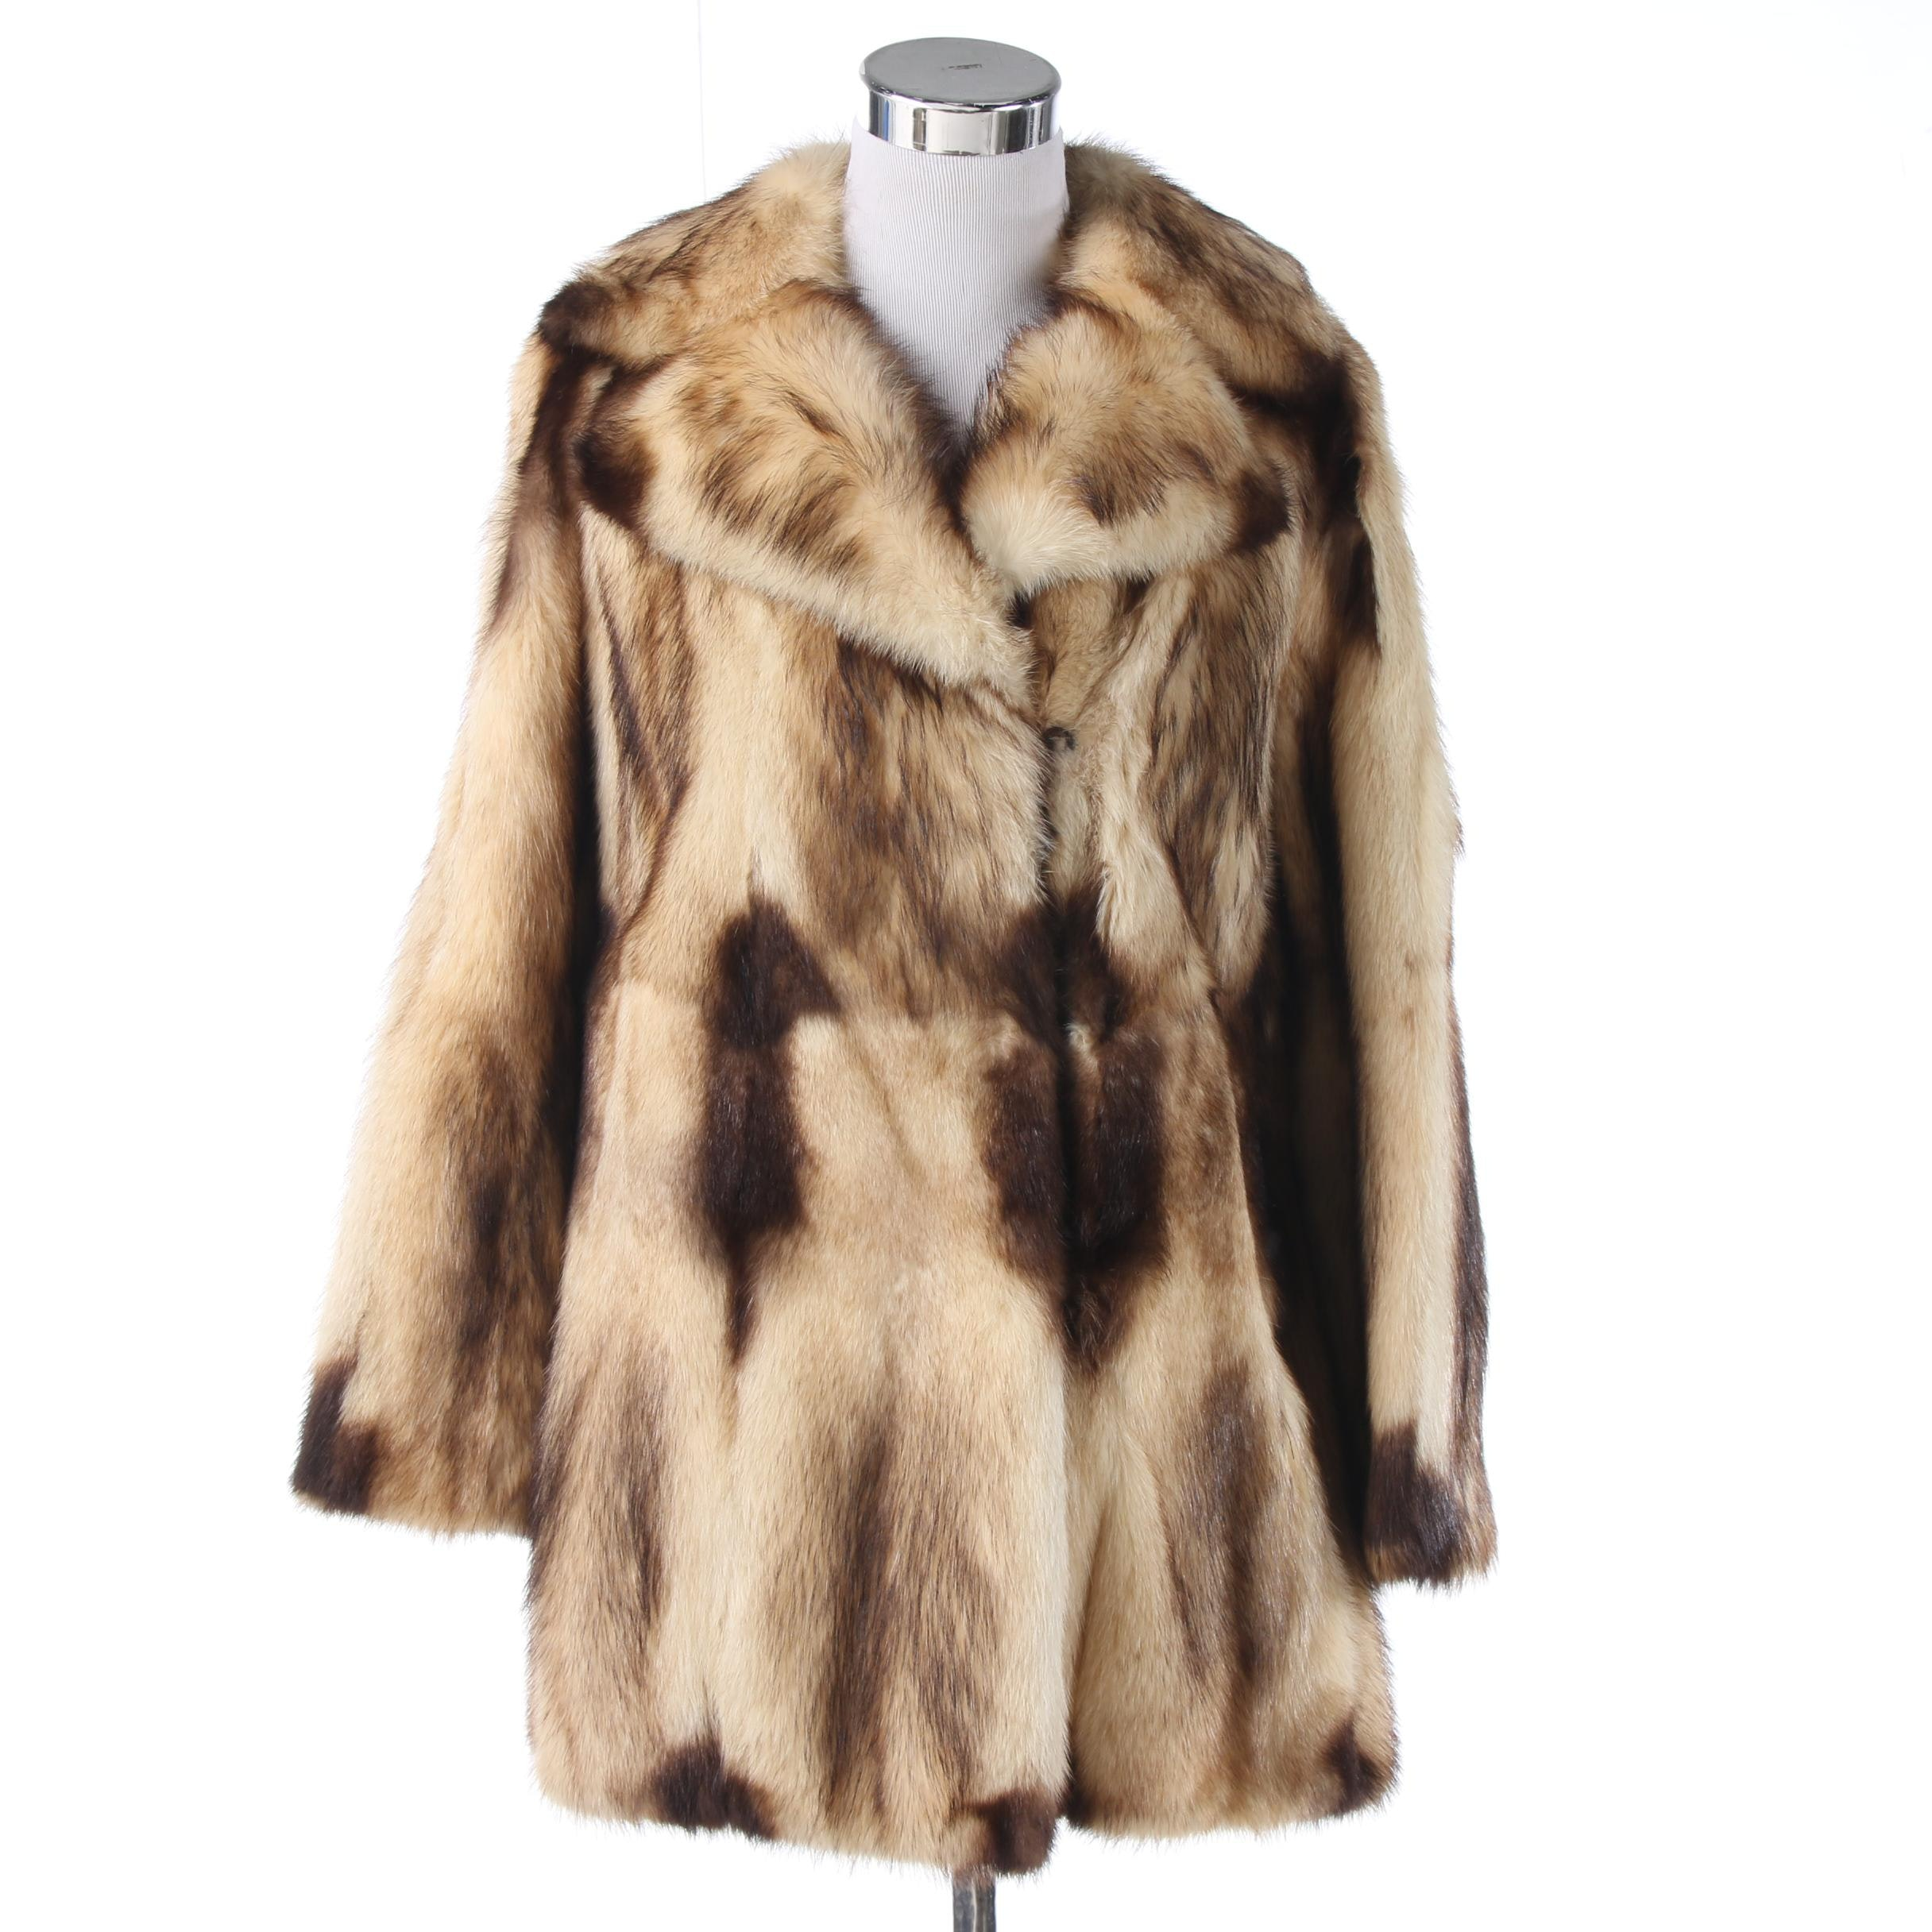 Davellin New York Fitch Fur Coat, 1970s Vintage